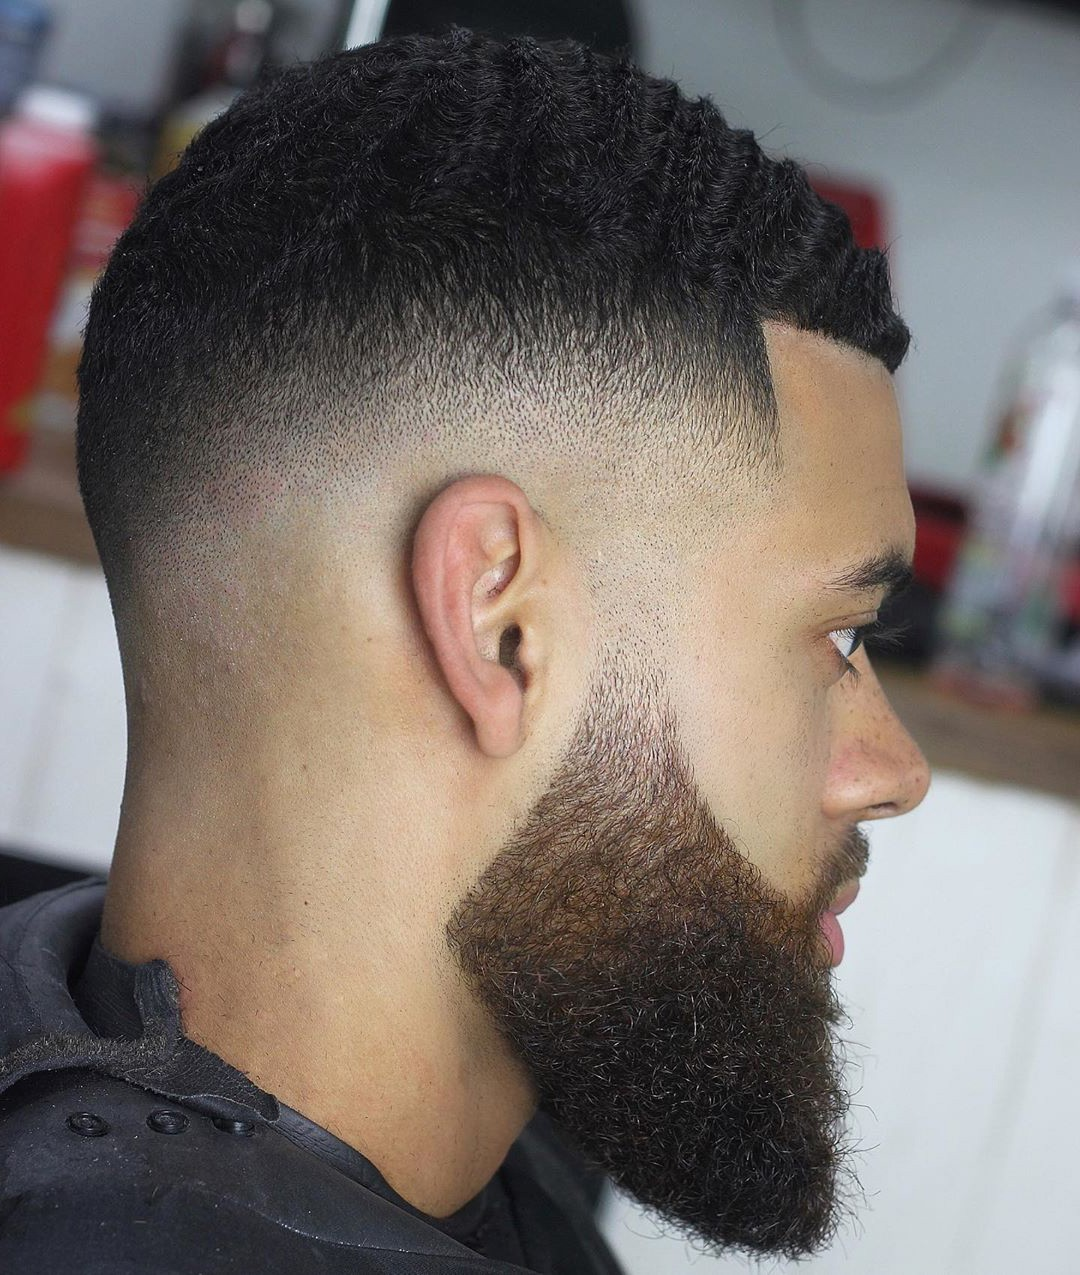 The man with a temp fade hairstyle with a beard a wavy hair.